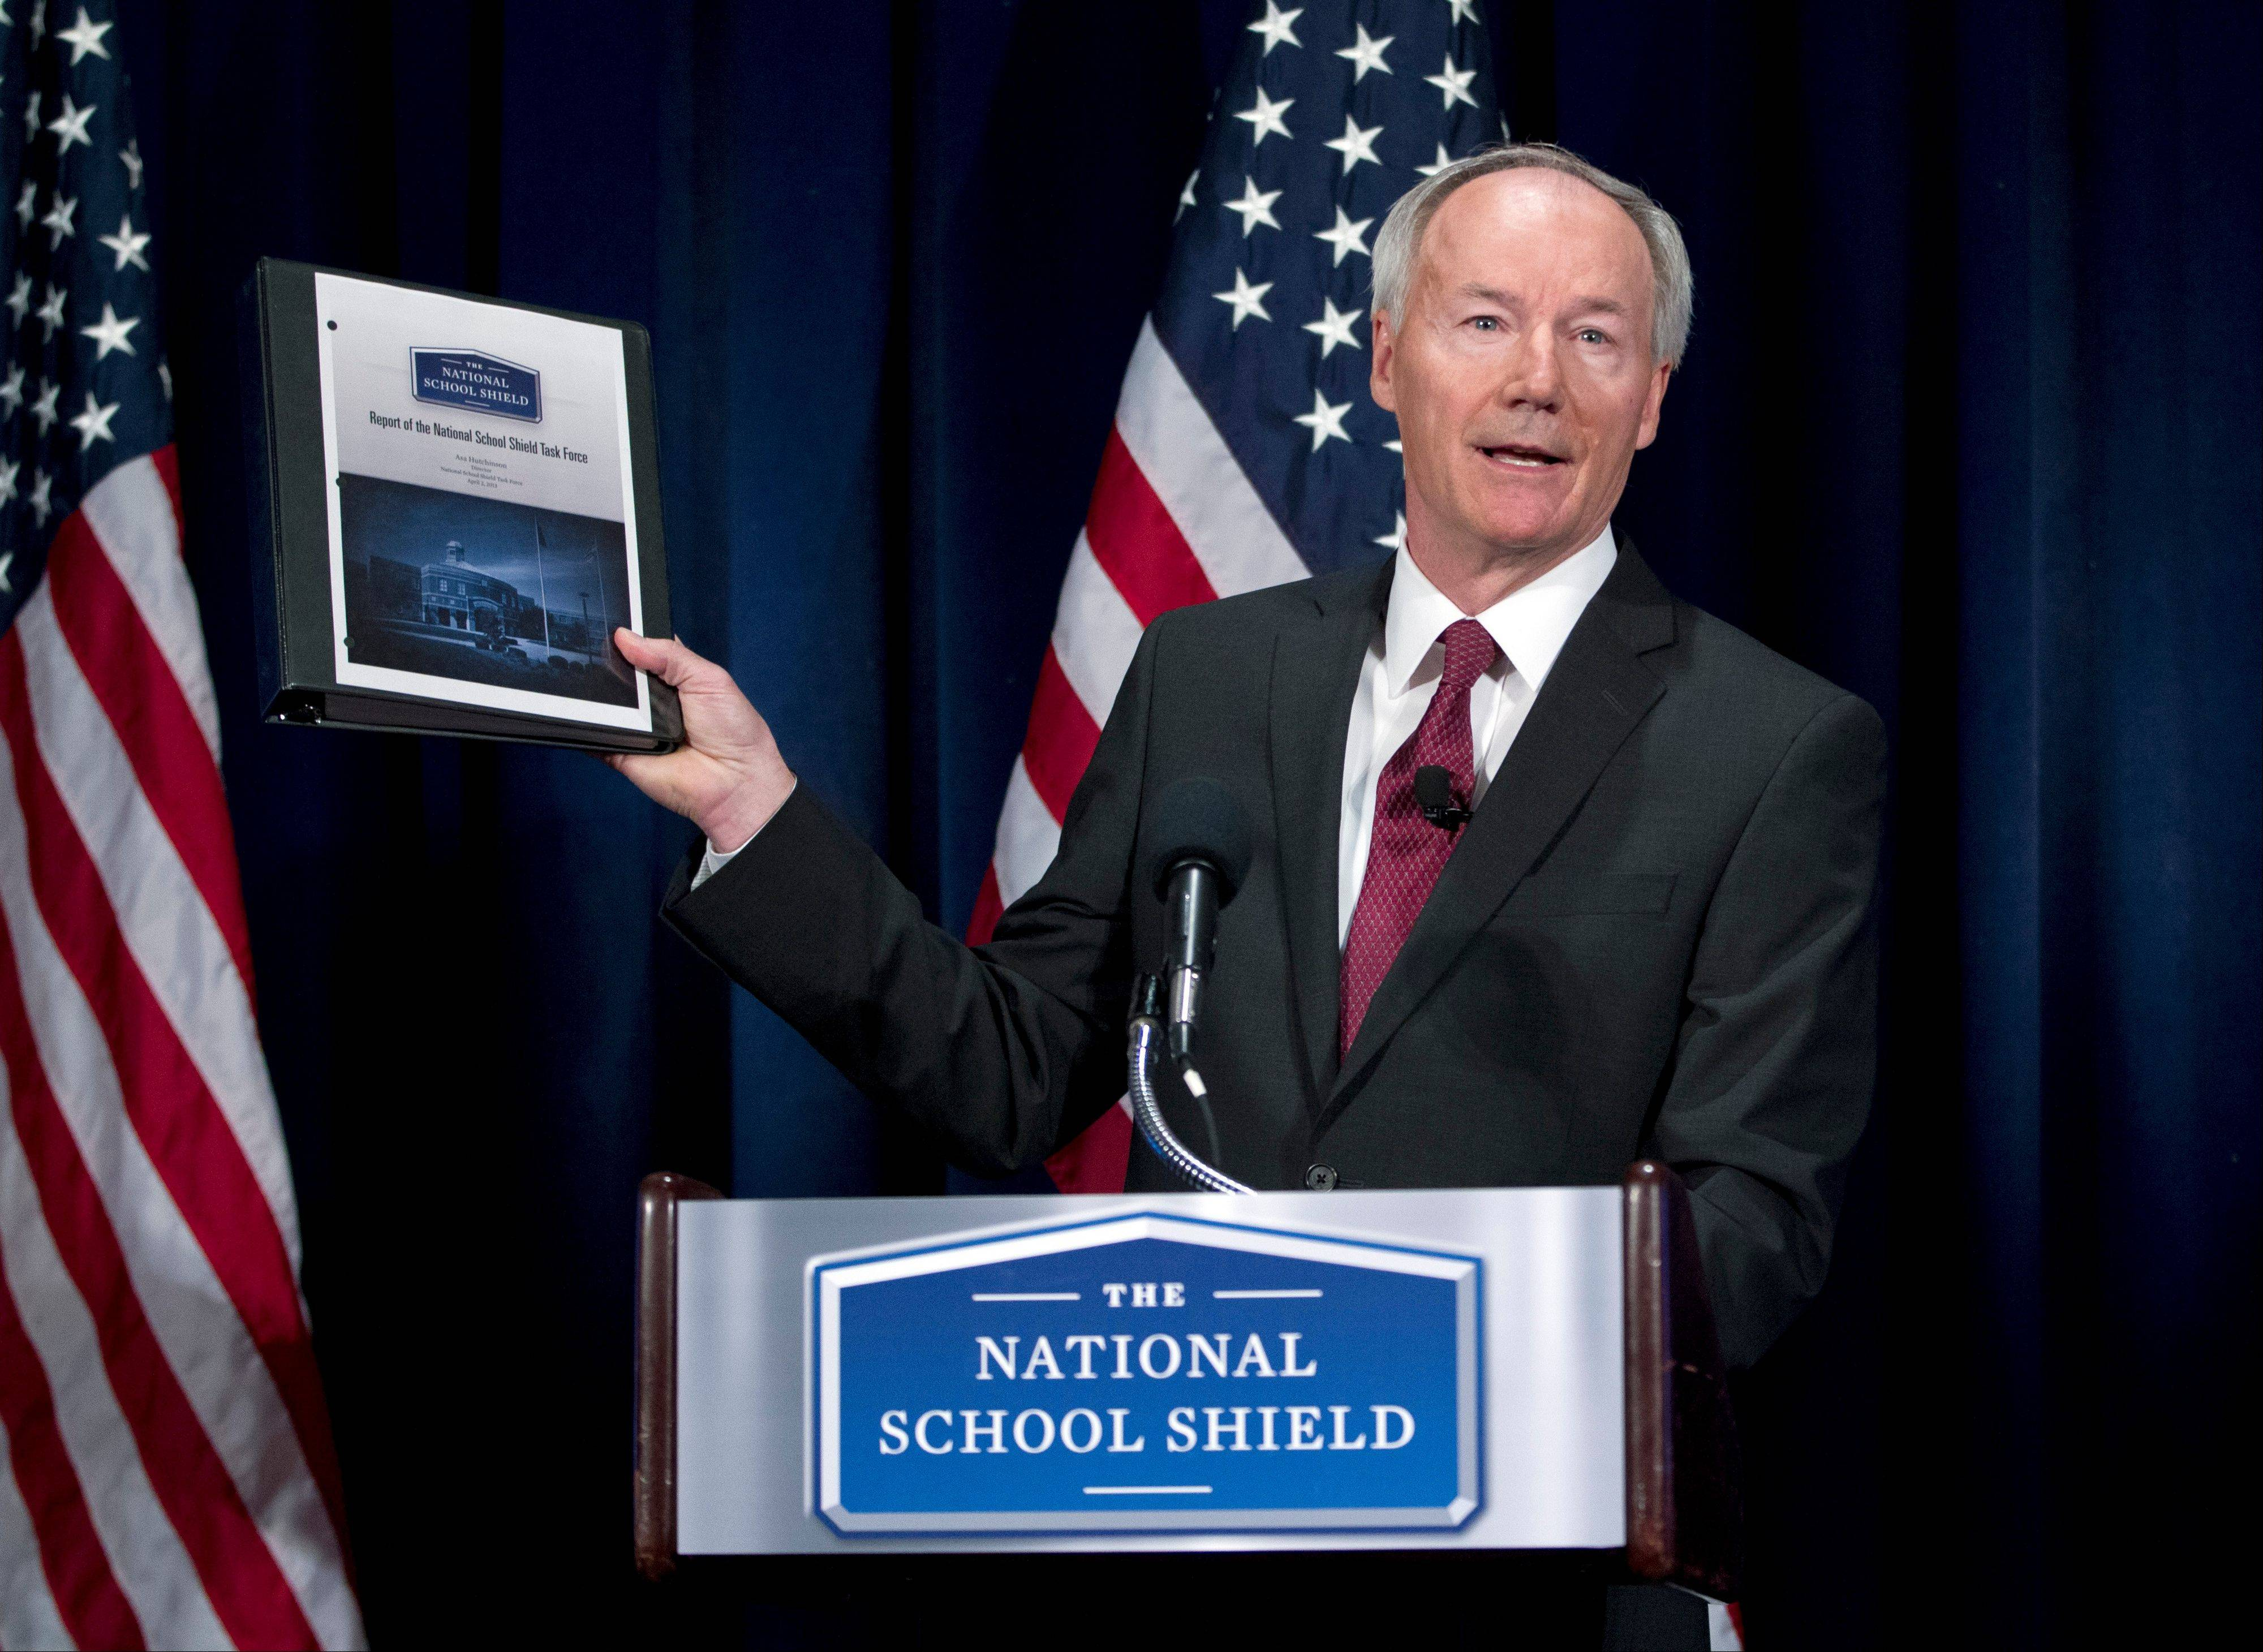 National School Shield Task Force Director, former Arkansas Rep. Asa Hutchinson, holds a copy of group's study during a news conference at National Press Club in Washington Tuesday. The National Rifle Association's study recommends schools across the nation each train and arm at least one staff member.